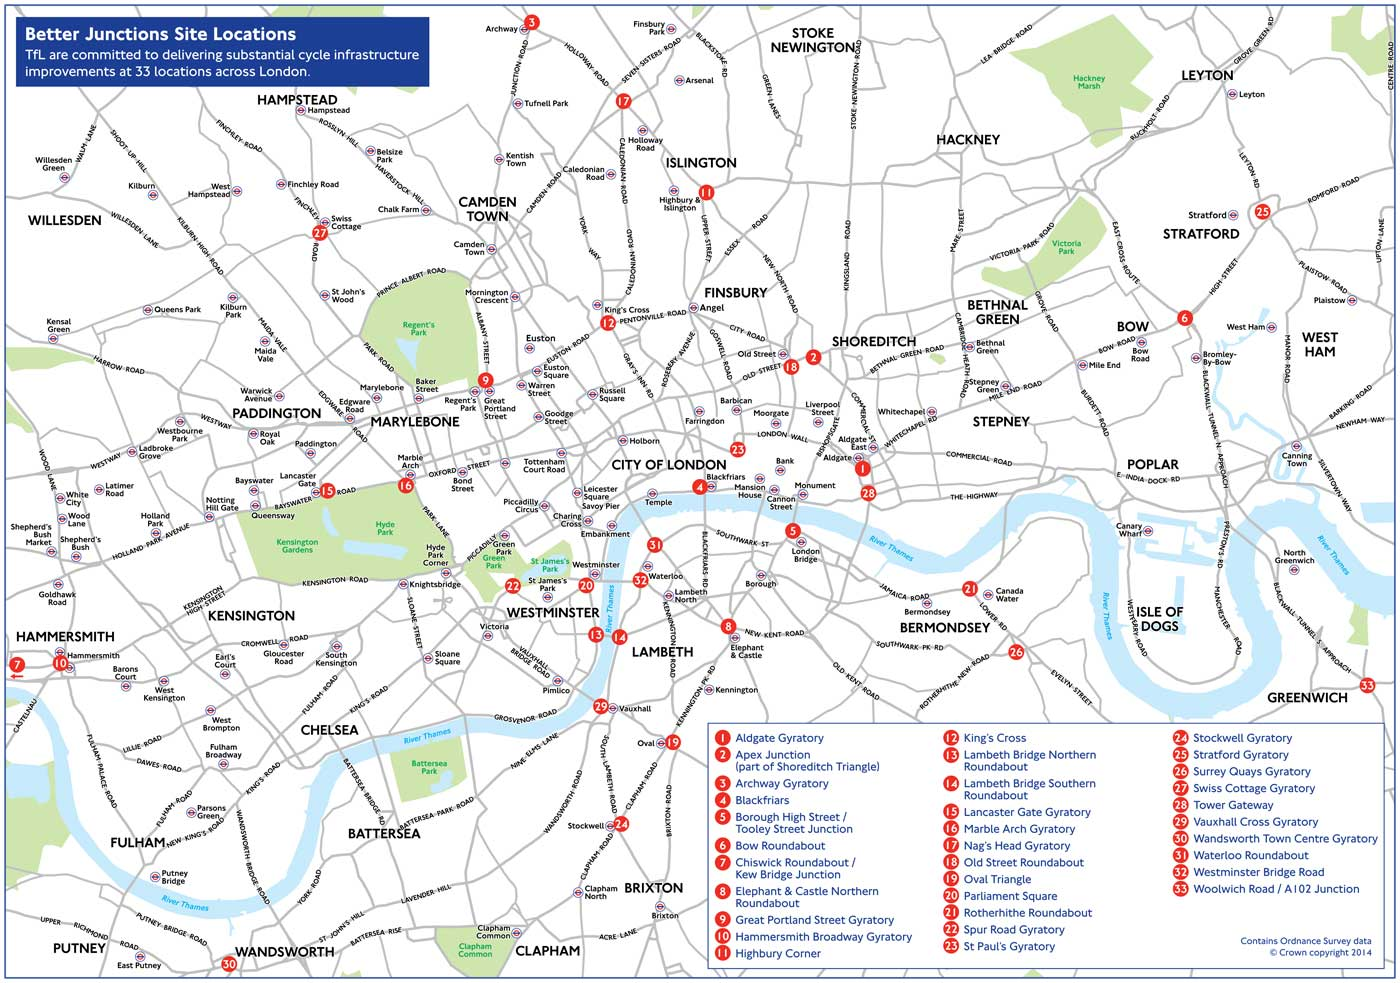 TfL map of 33 junctions for improvements